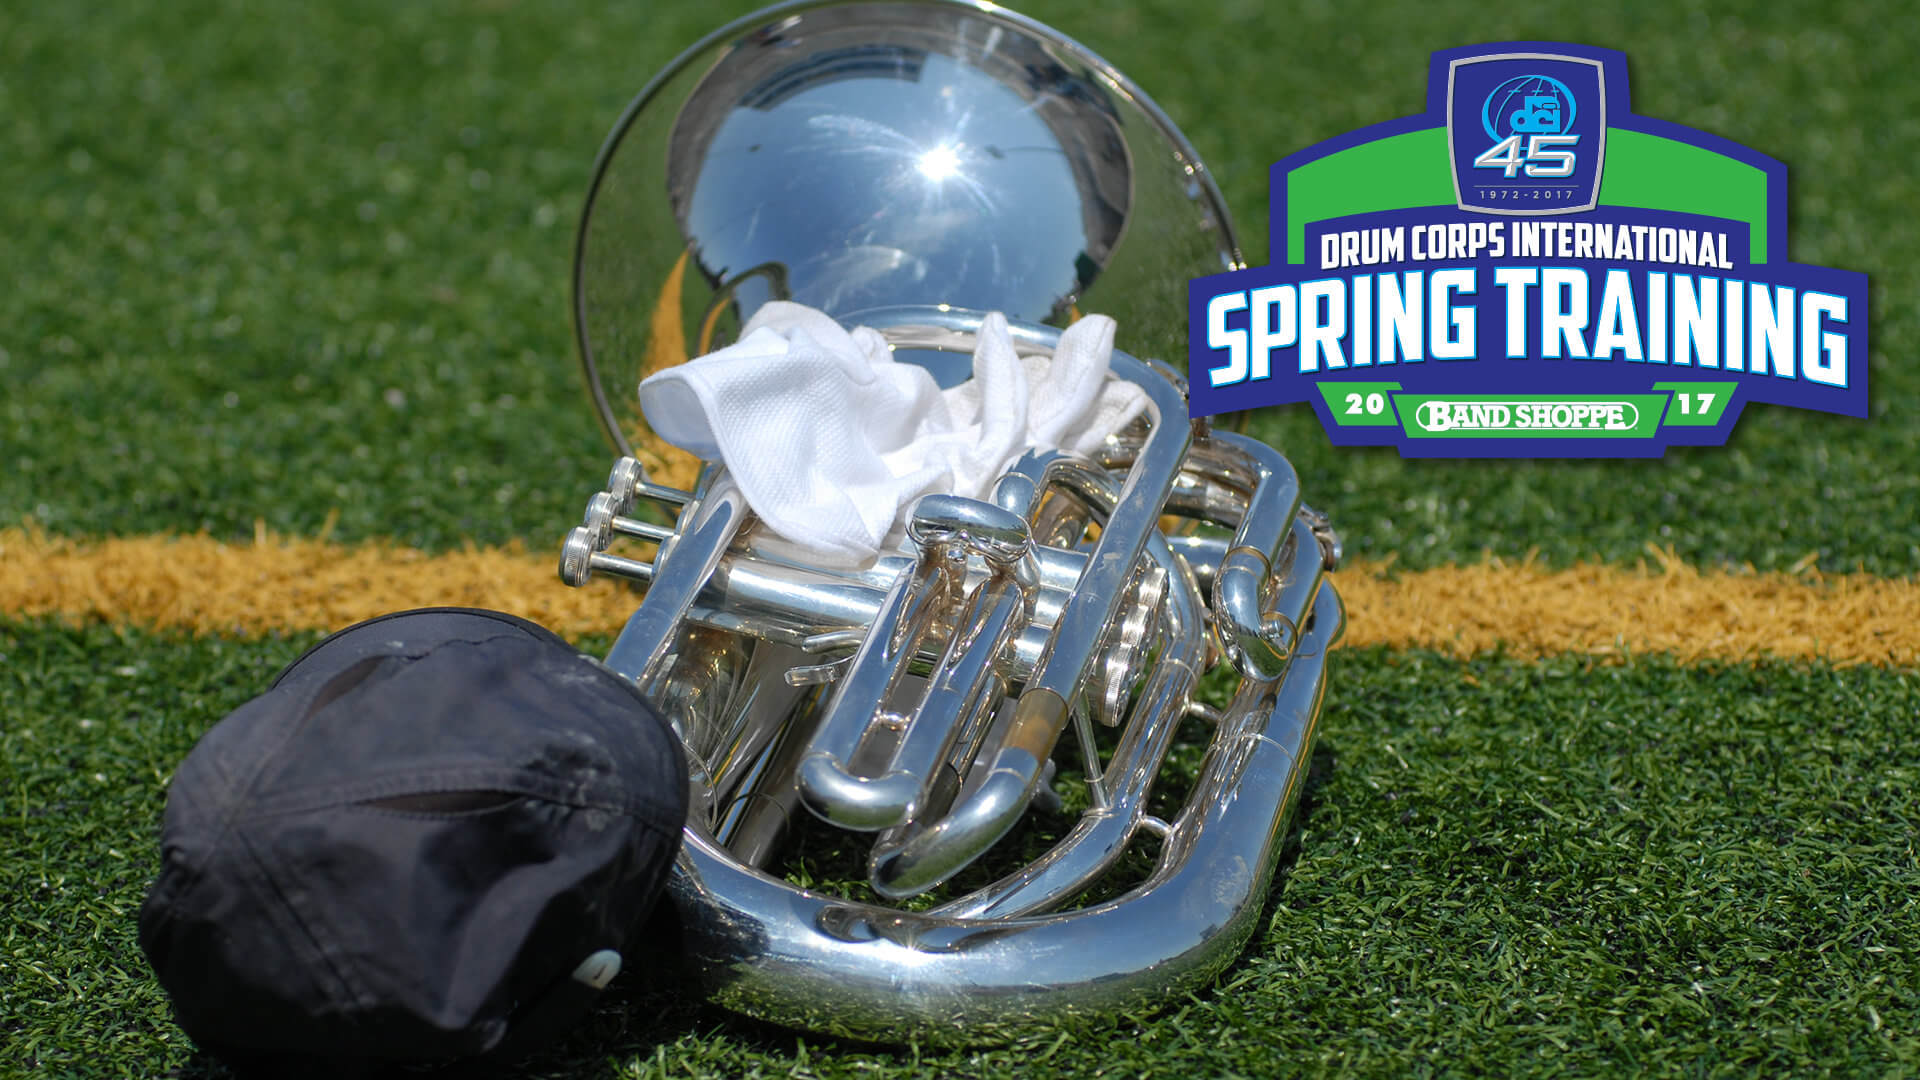 DCI Spring Training presented by Band Shoppe